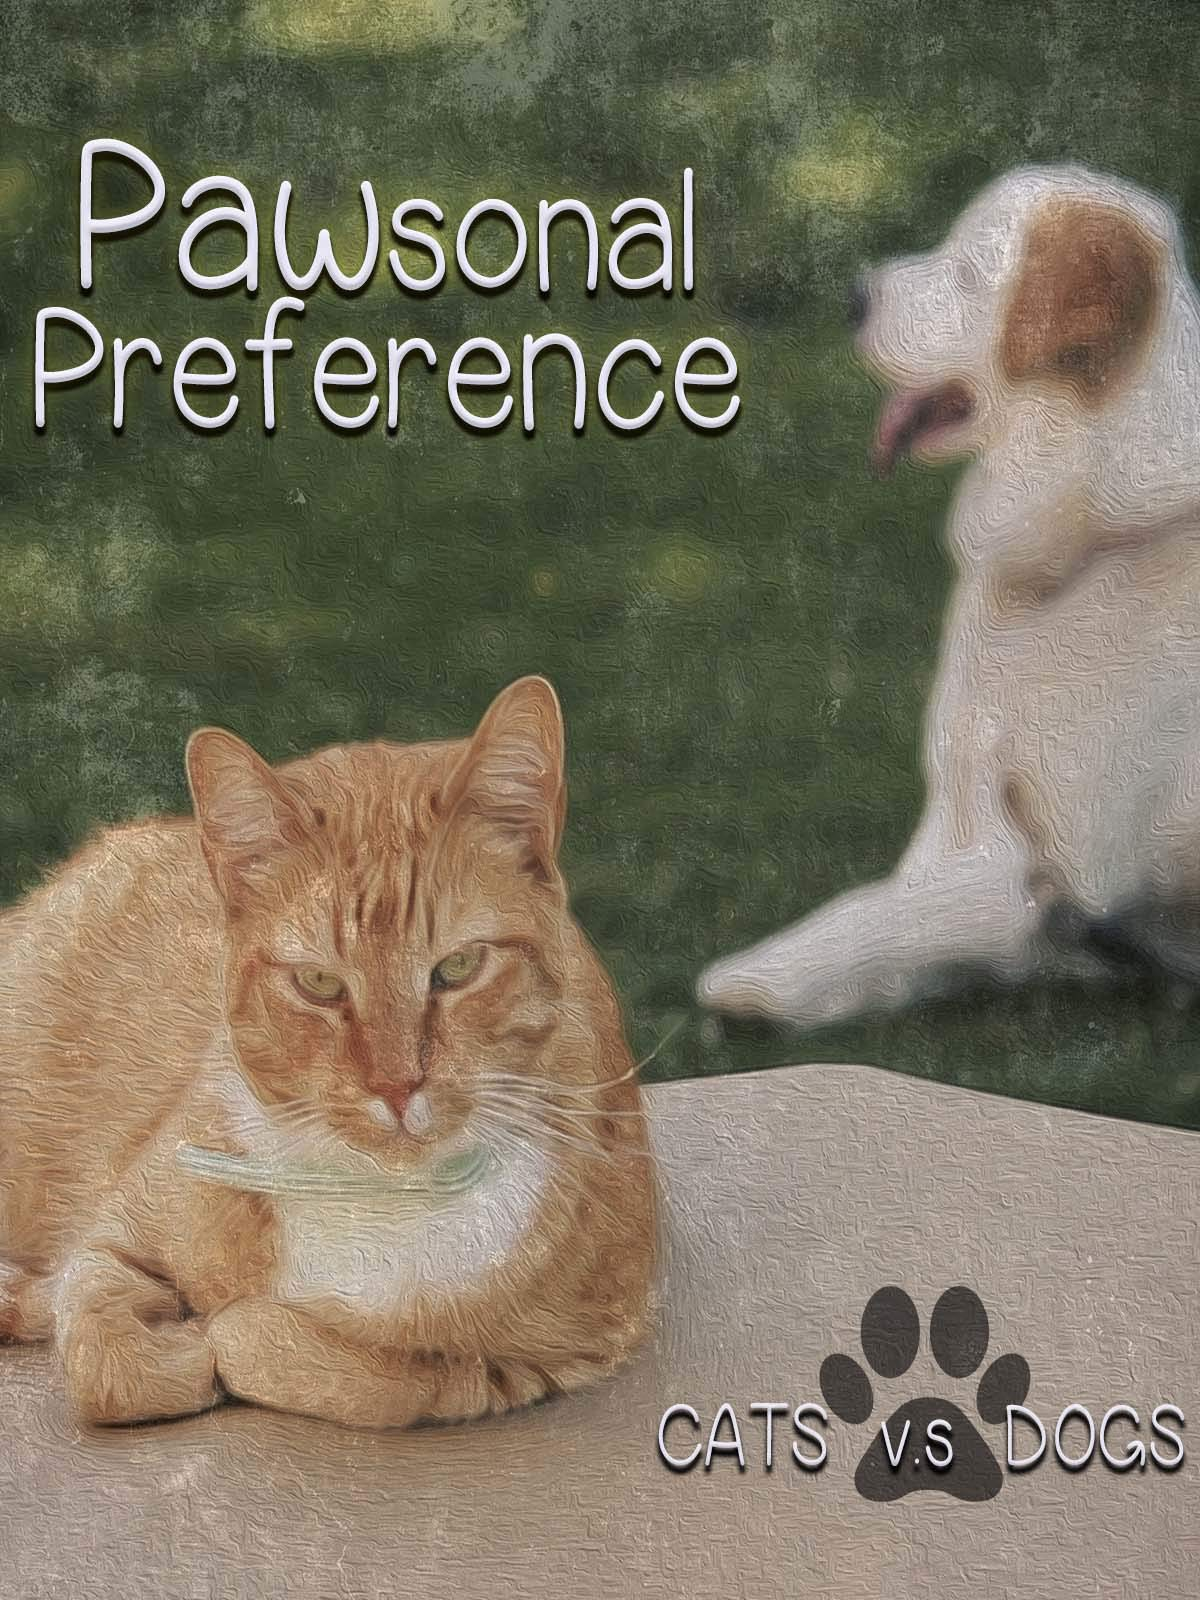 Pawsonal Preference - Dogs v.s Cats on Amazon Prime Video UK